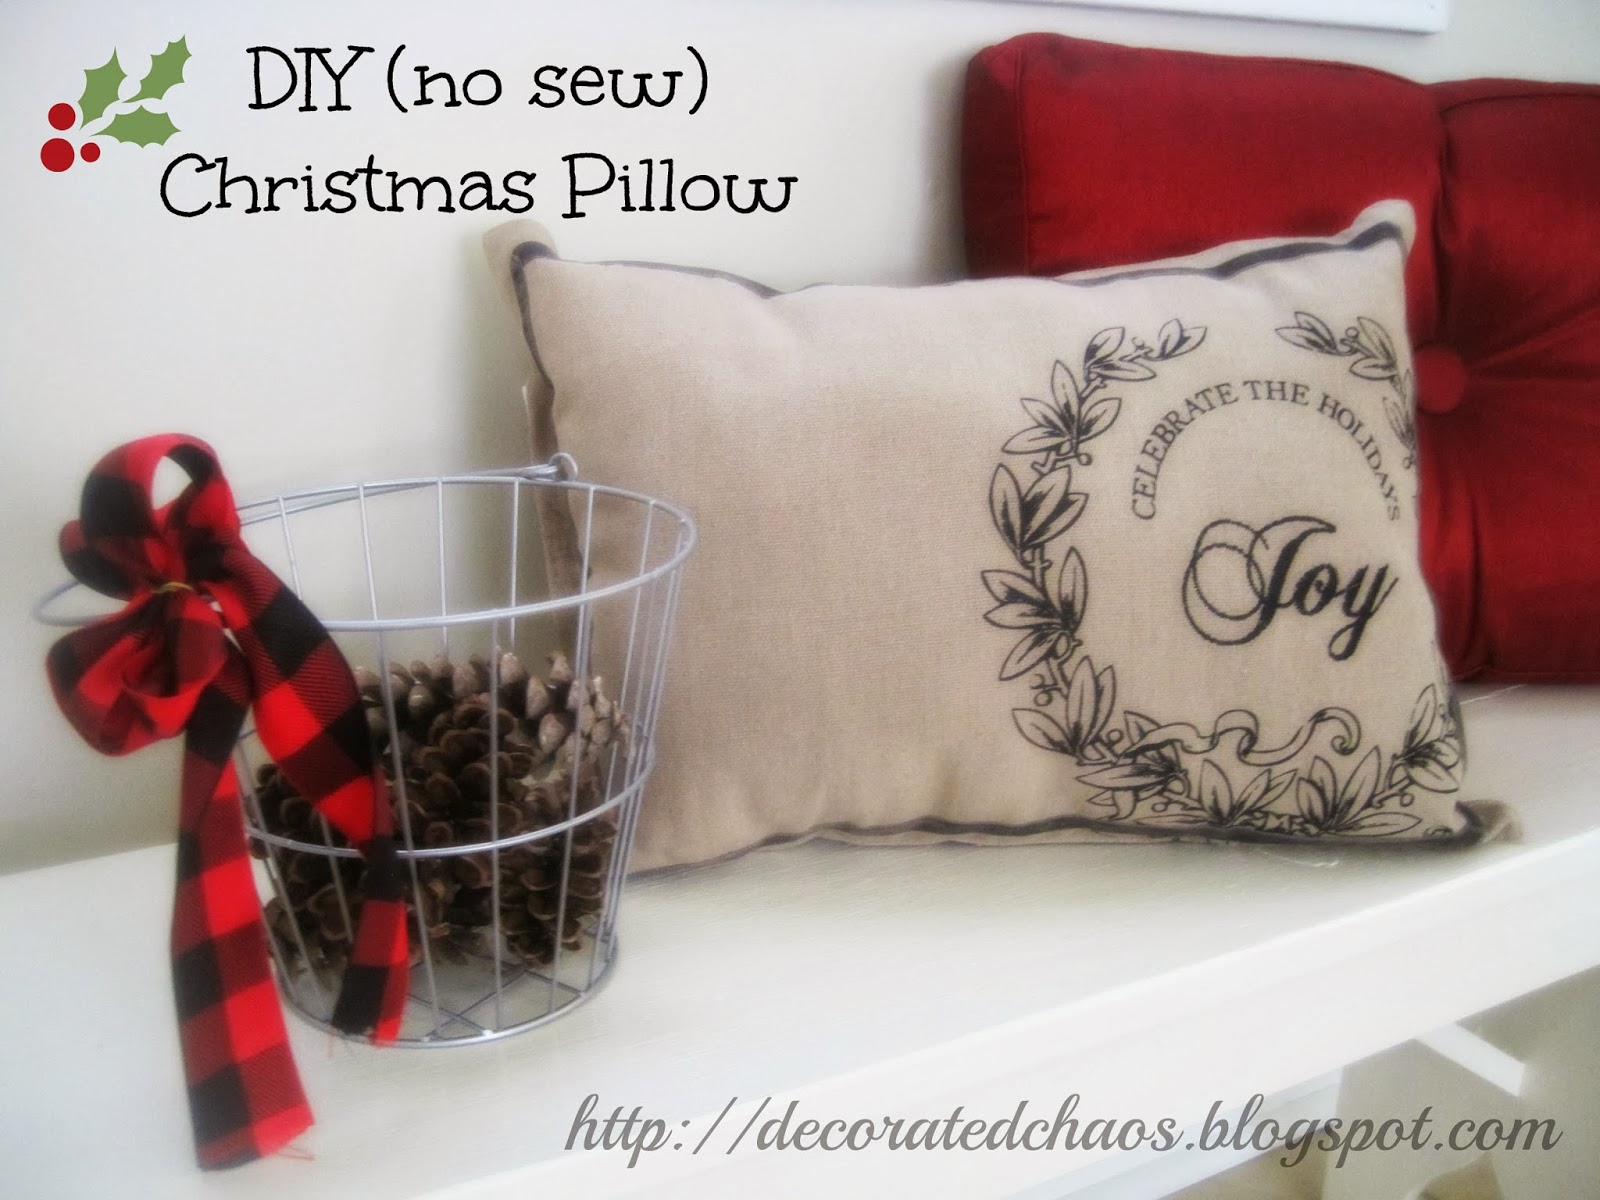 http://decoratedchaos.blogspot.com/2013/12/how-to-make-place-mat-pillow.html